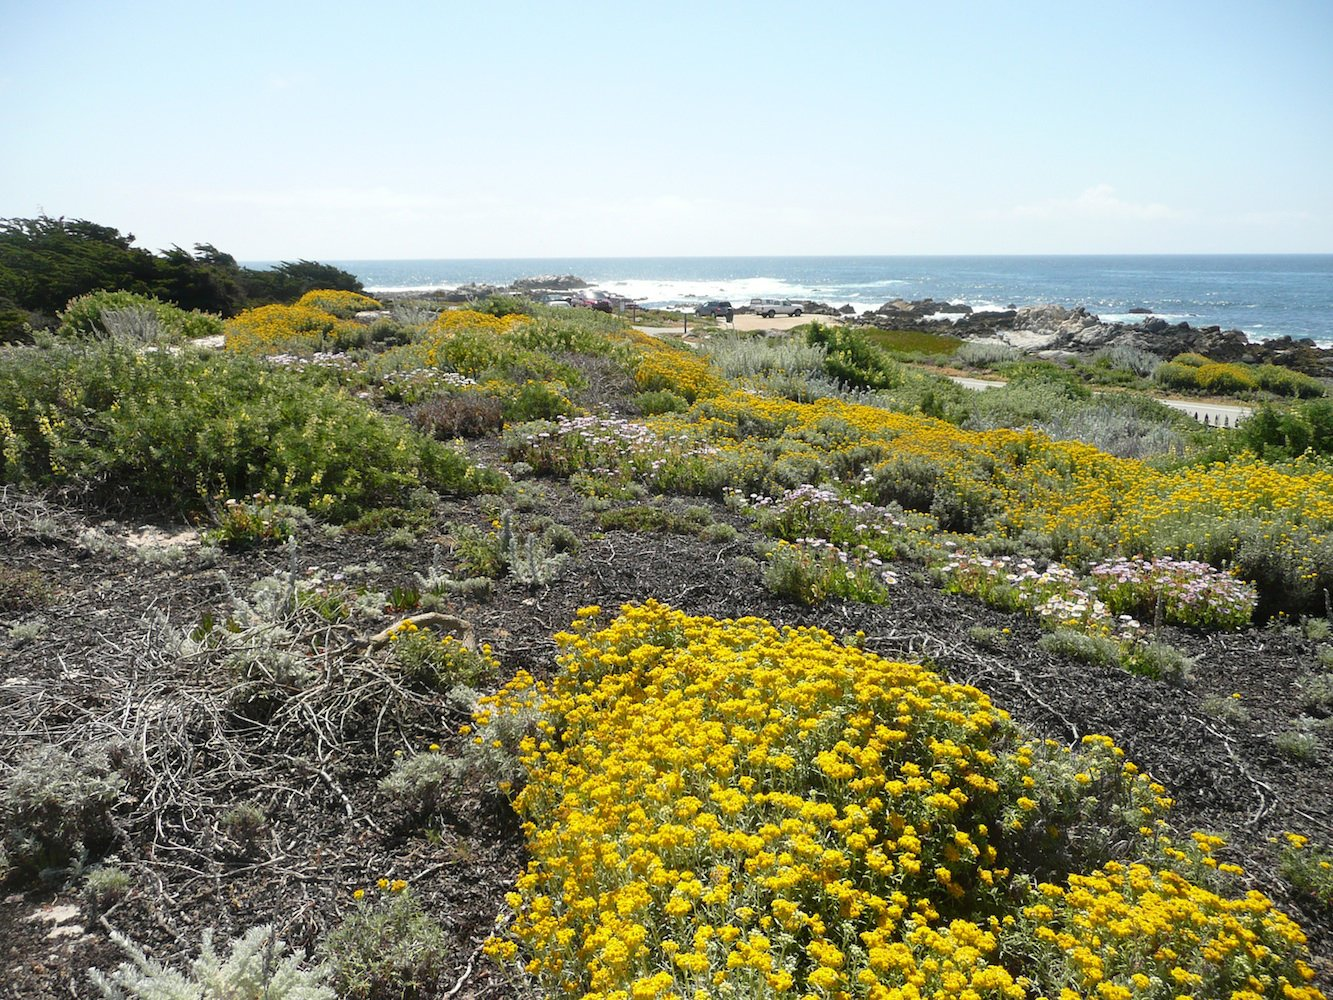 Pacific Grove Dune Restoration by John Wandke.  Photo 7 of 11 in Rana Creek: The Design Firm Bringing Architecture to Life